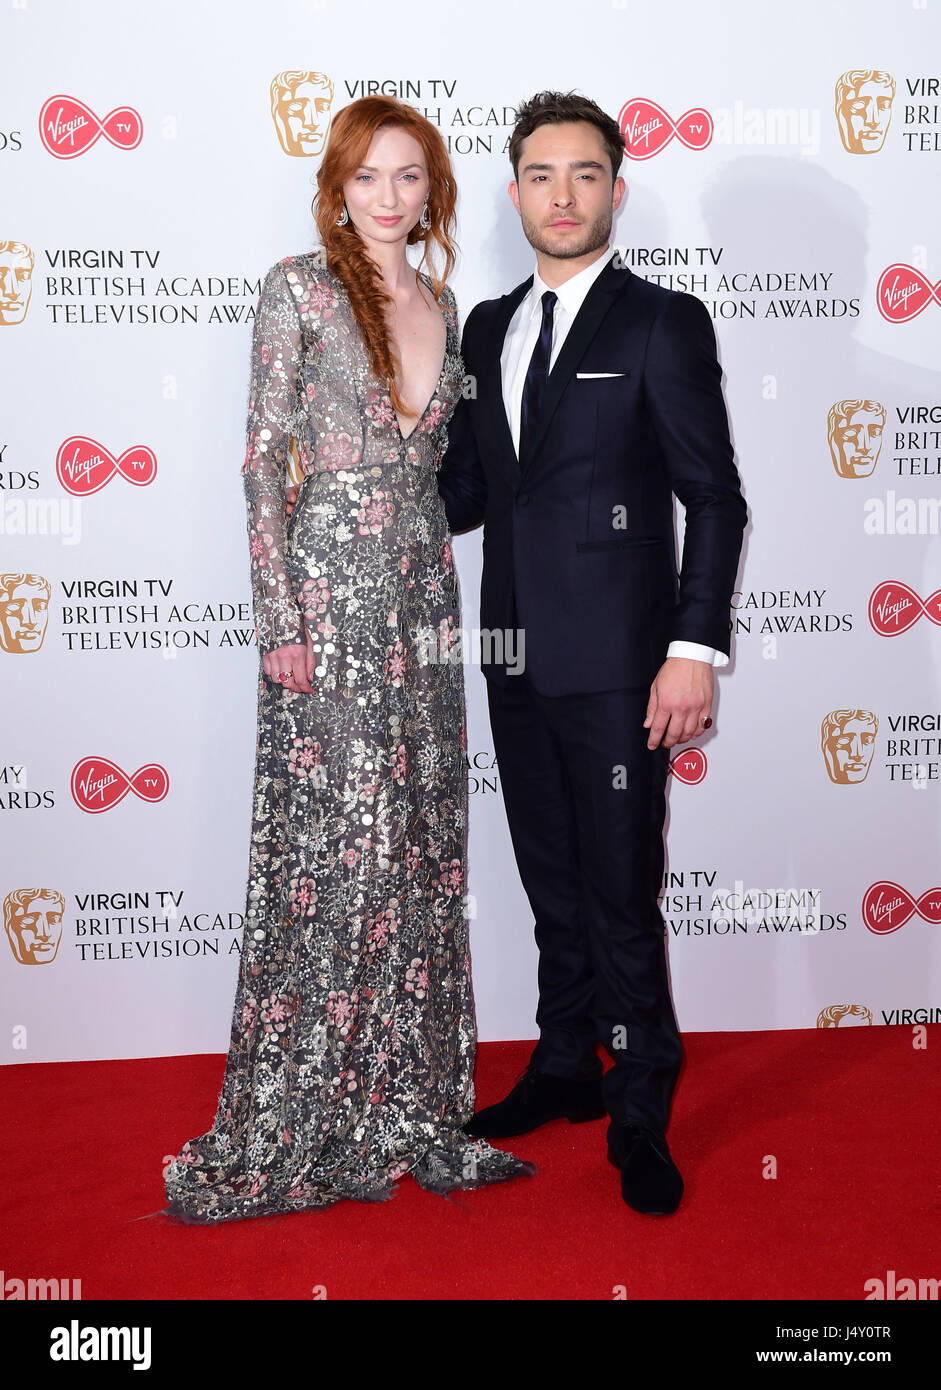 Eleanor Tomlinson and Ed Westwick in the press room at the Virgin TV British Academy Television Awards 2017 held - Stock Image